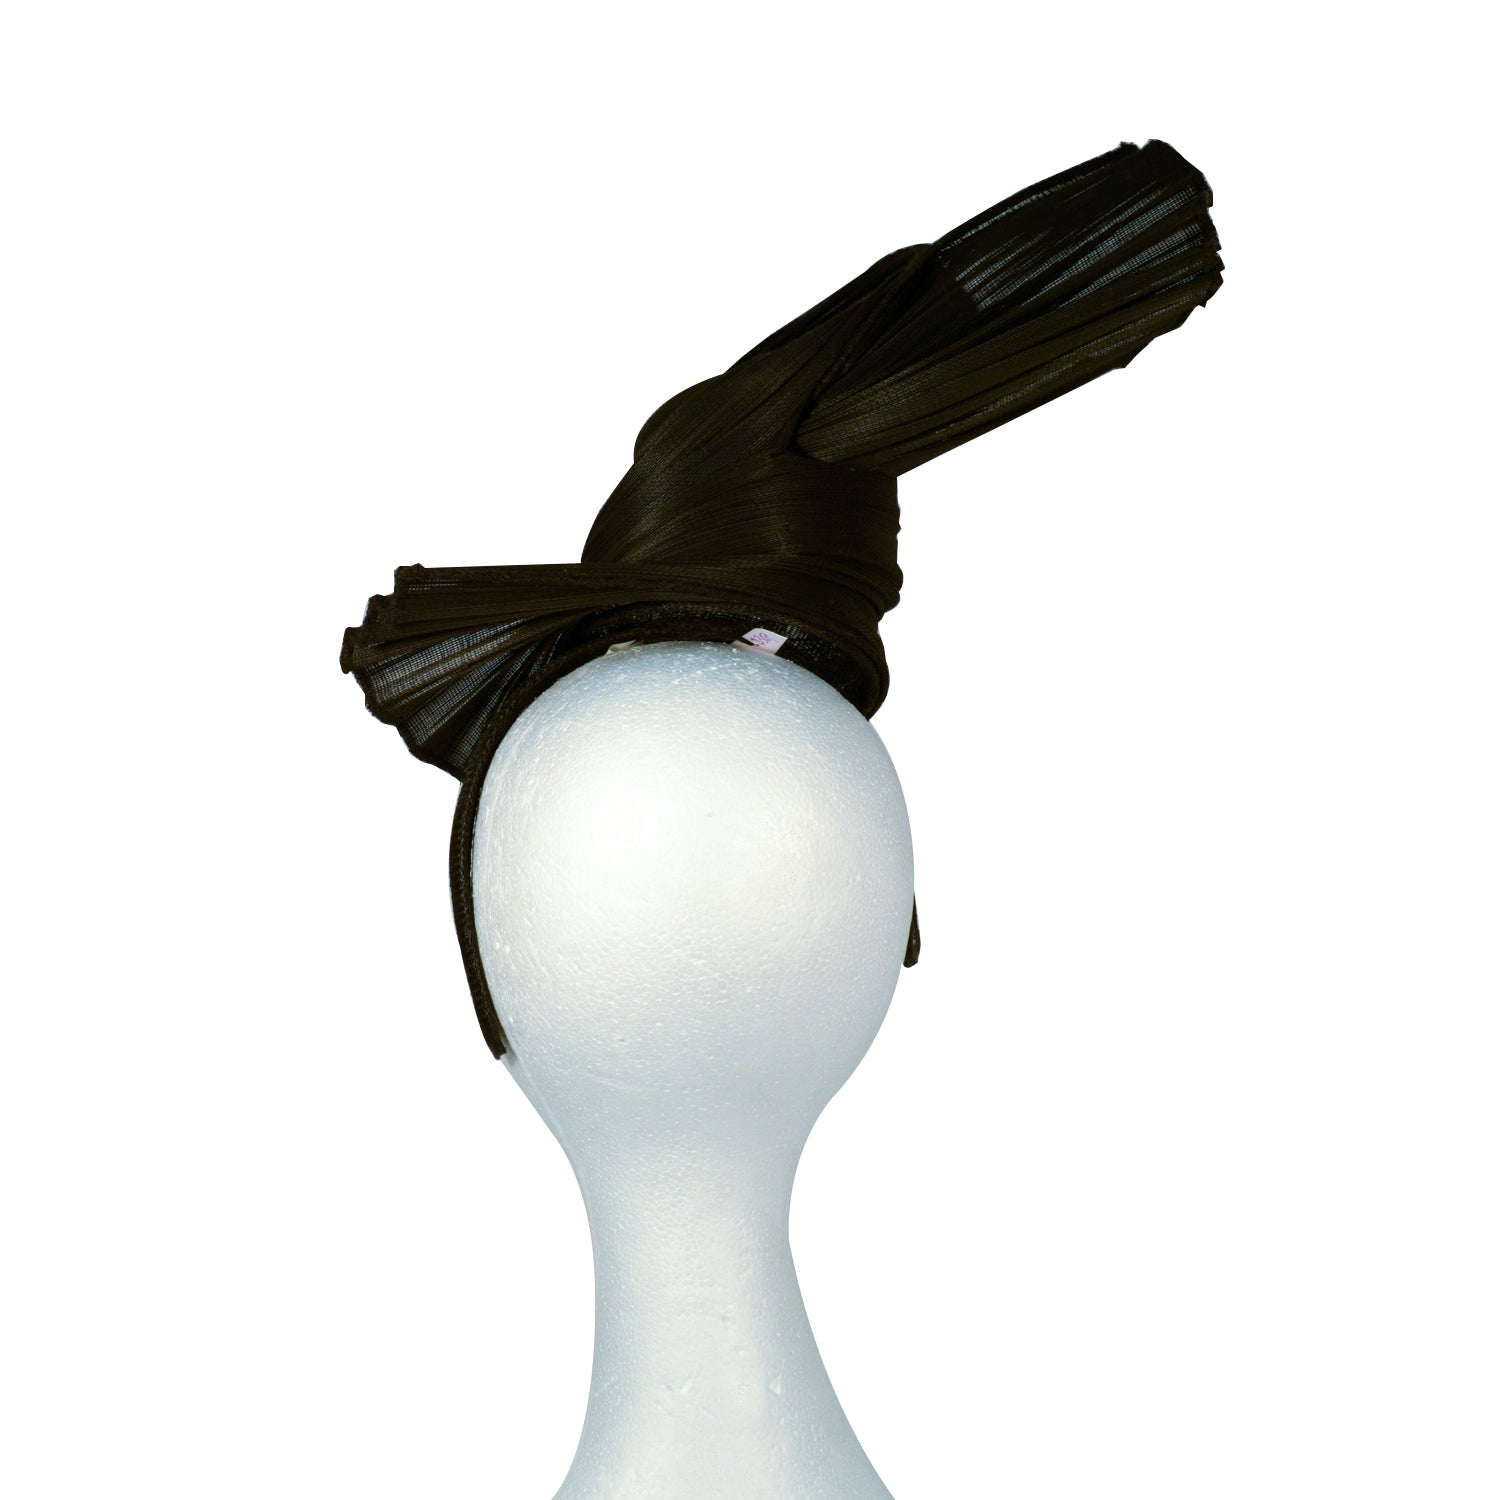 Black twister fascinator